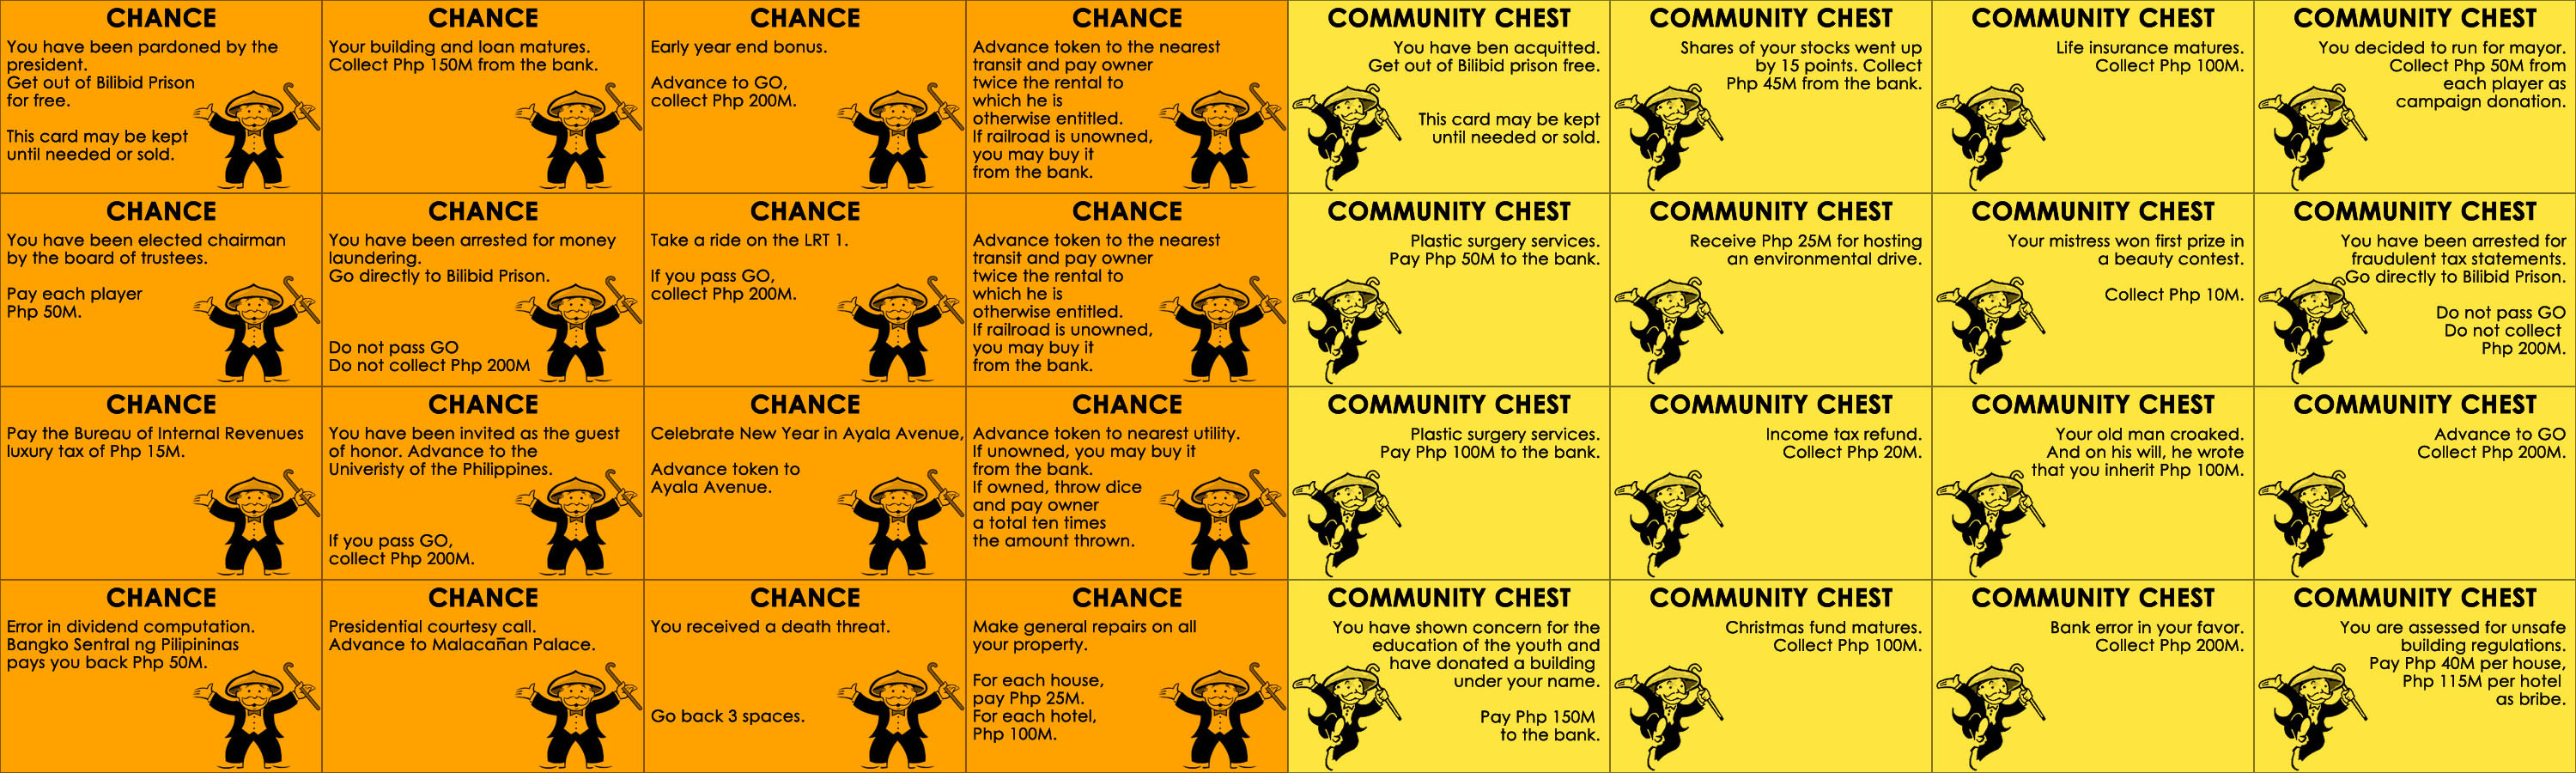 Chance Card Template | Pinoypoly Chance Chest Cards By Lykwys On Deviantart